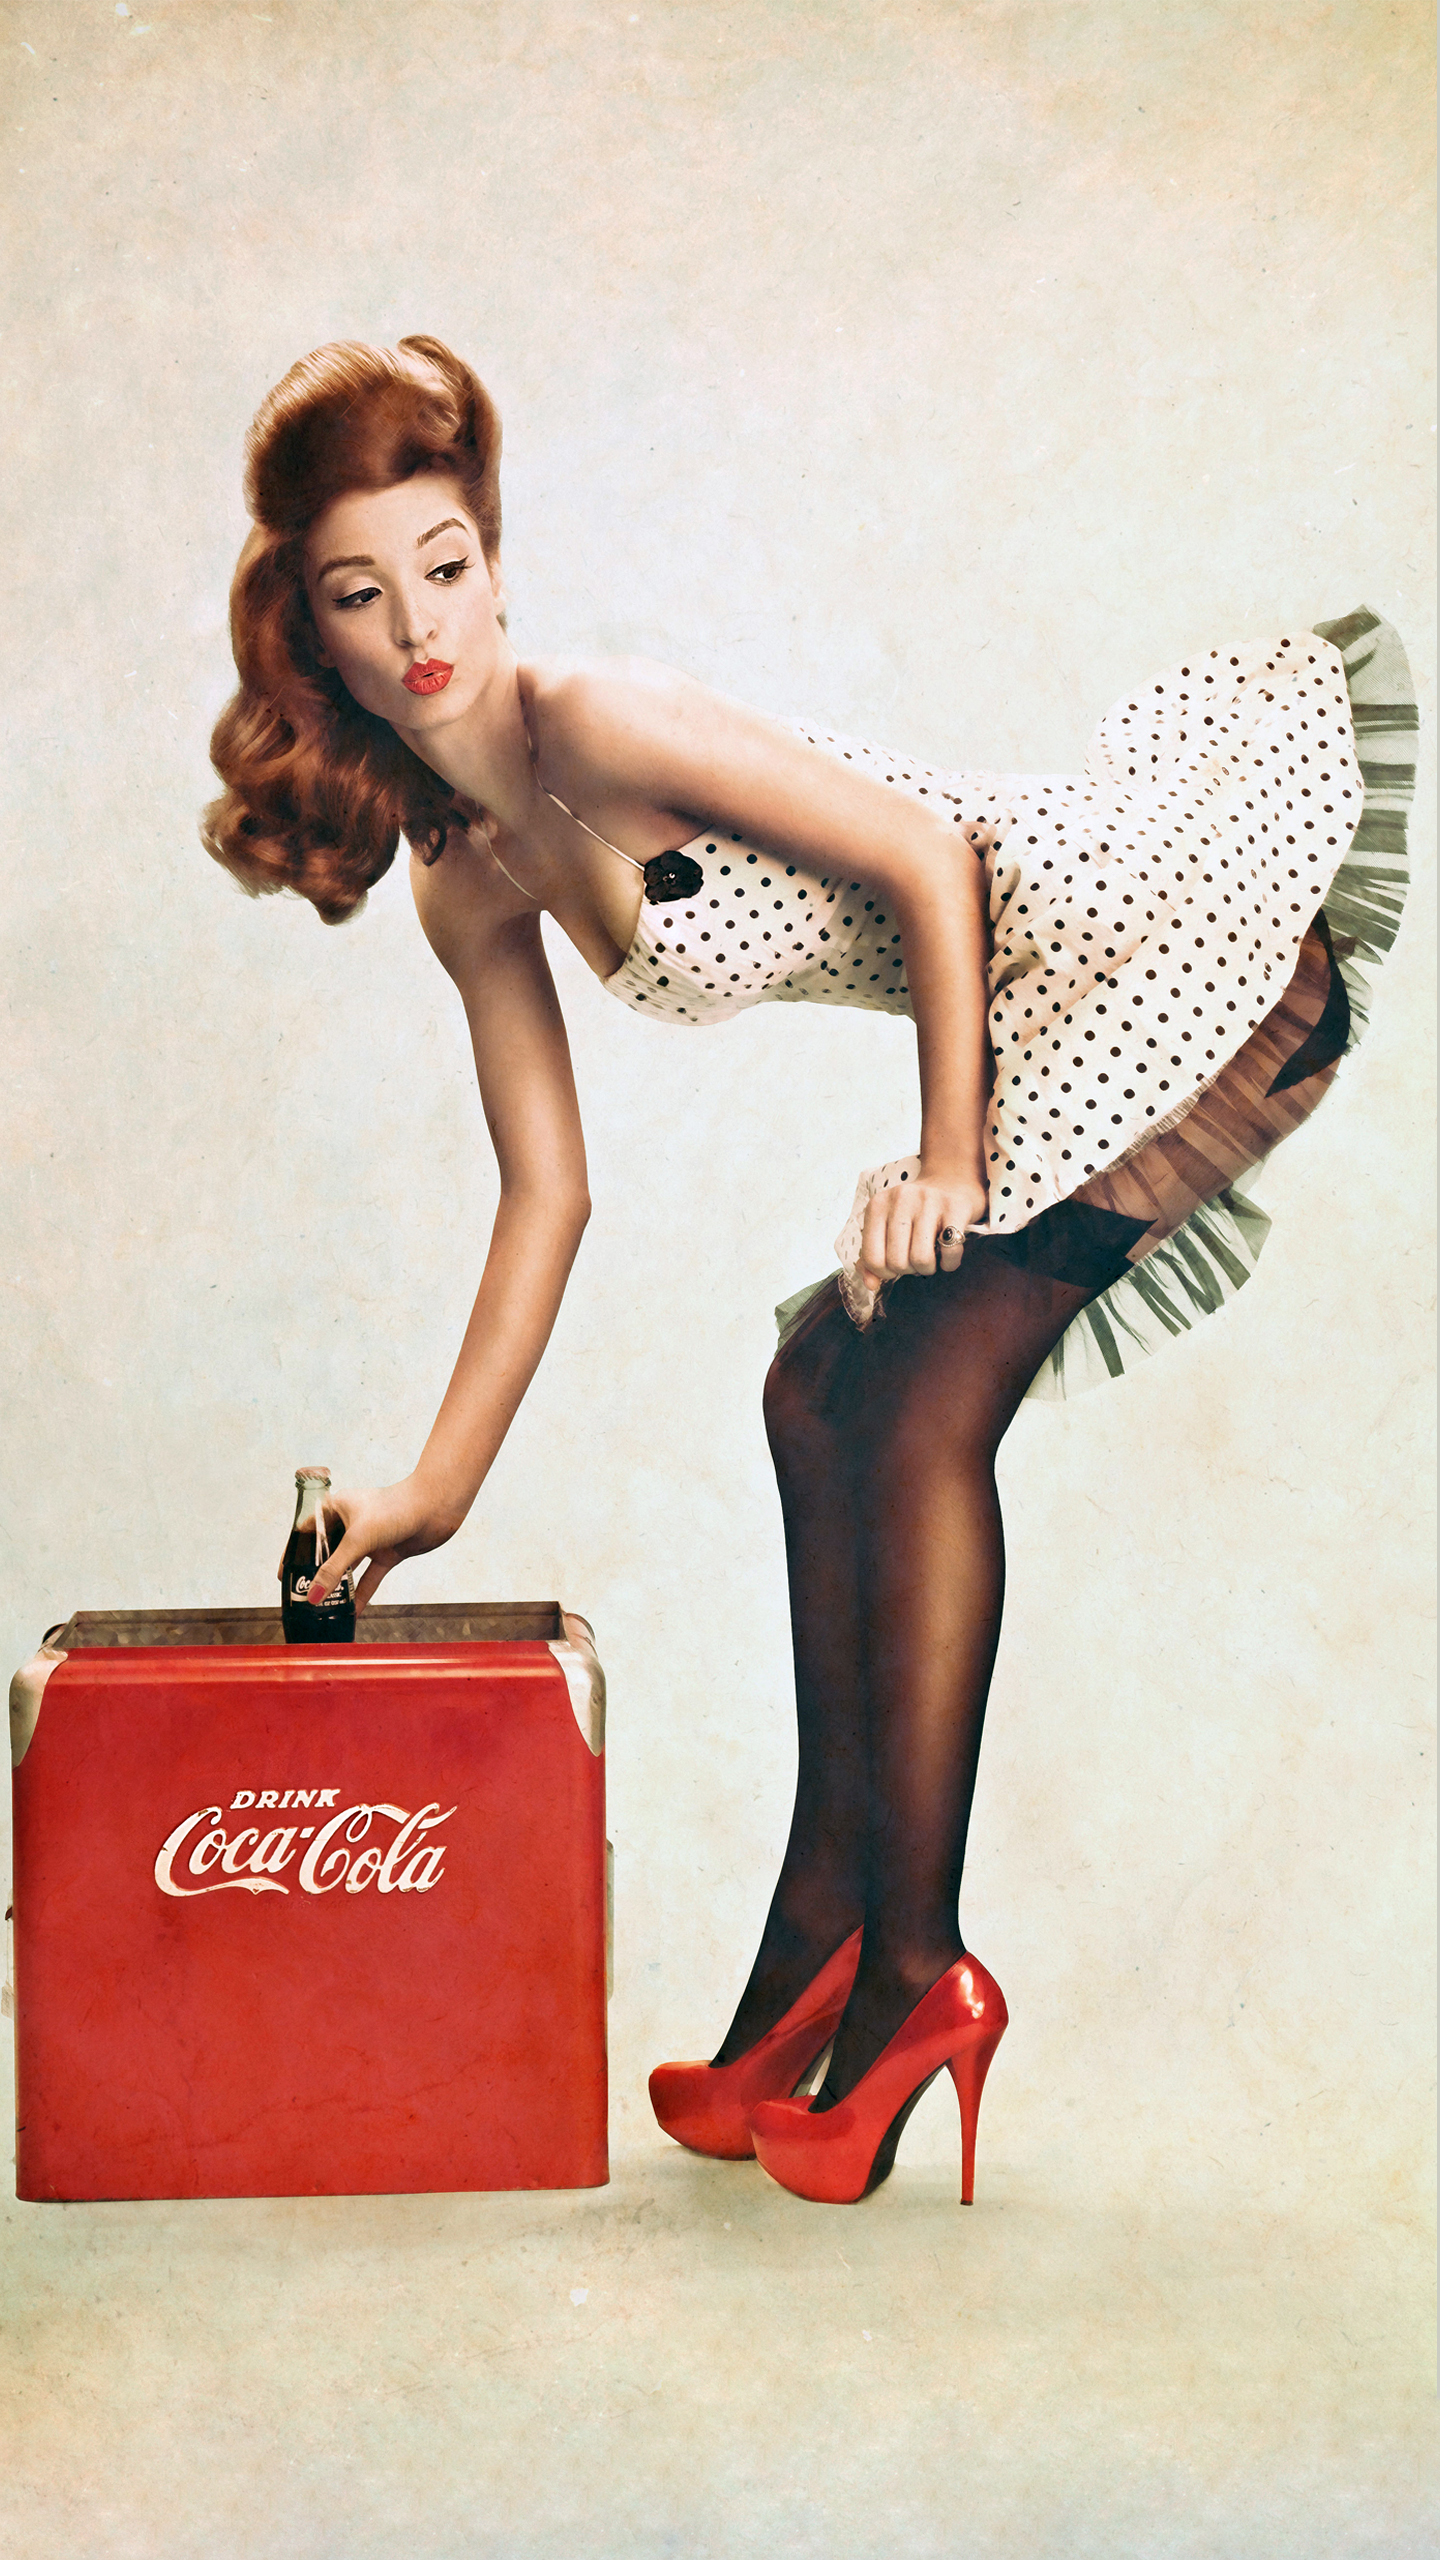 Drink Coca Cola Girl